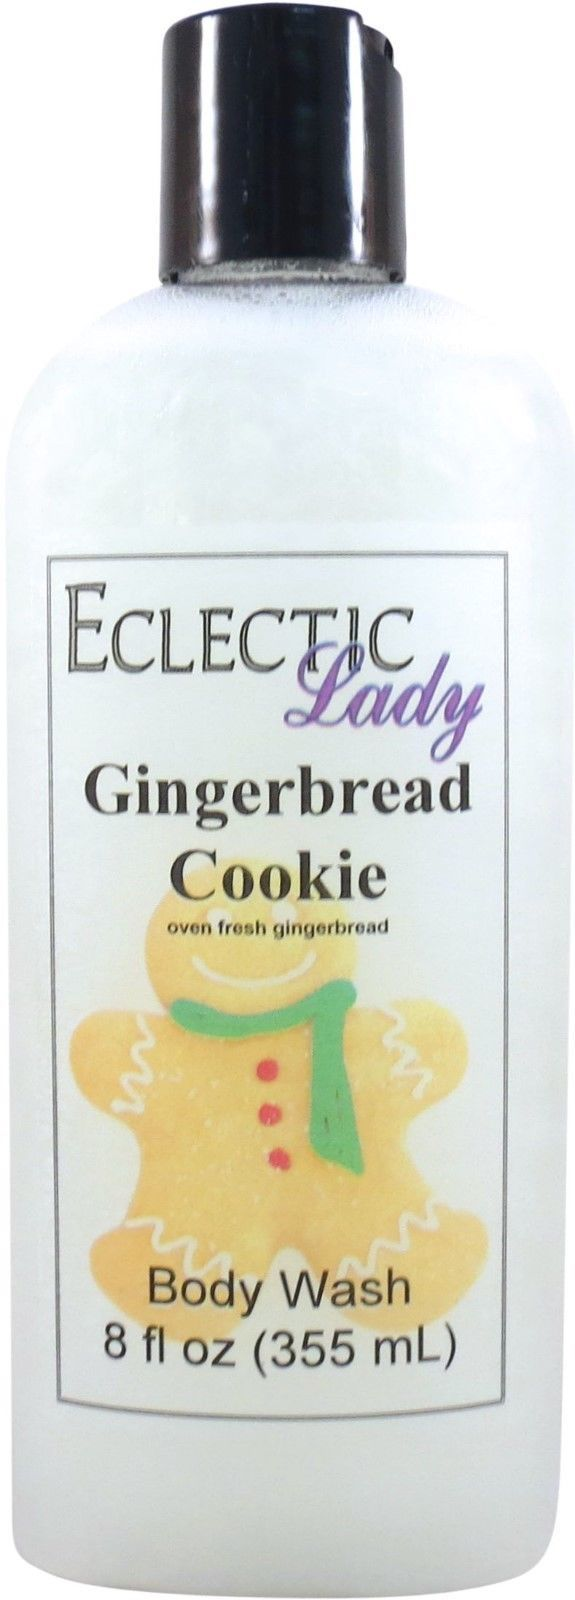 Gingerbread Cookie Body Wash